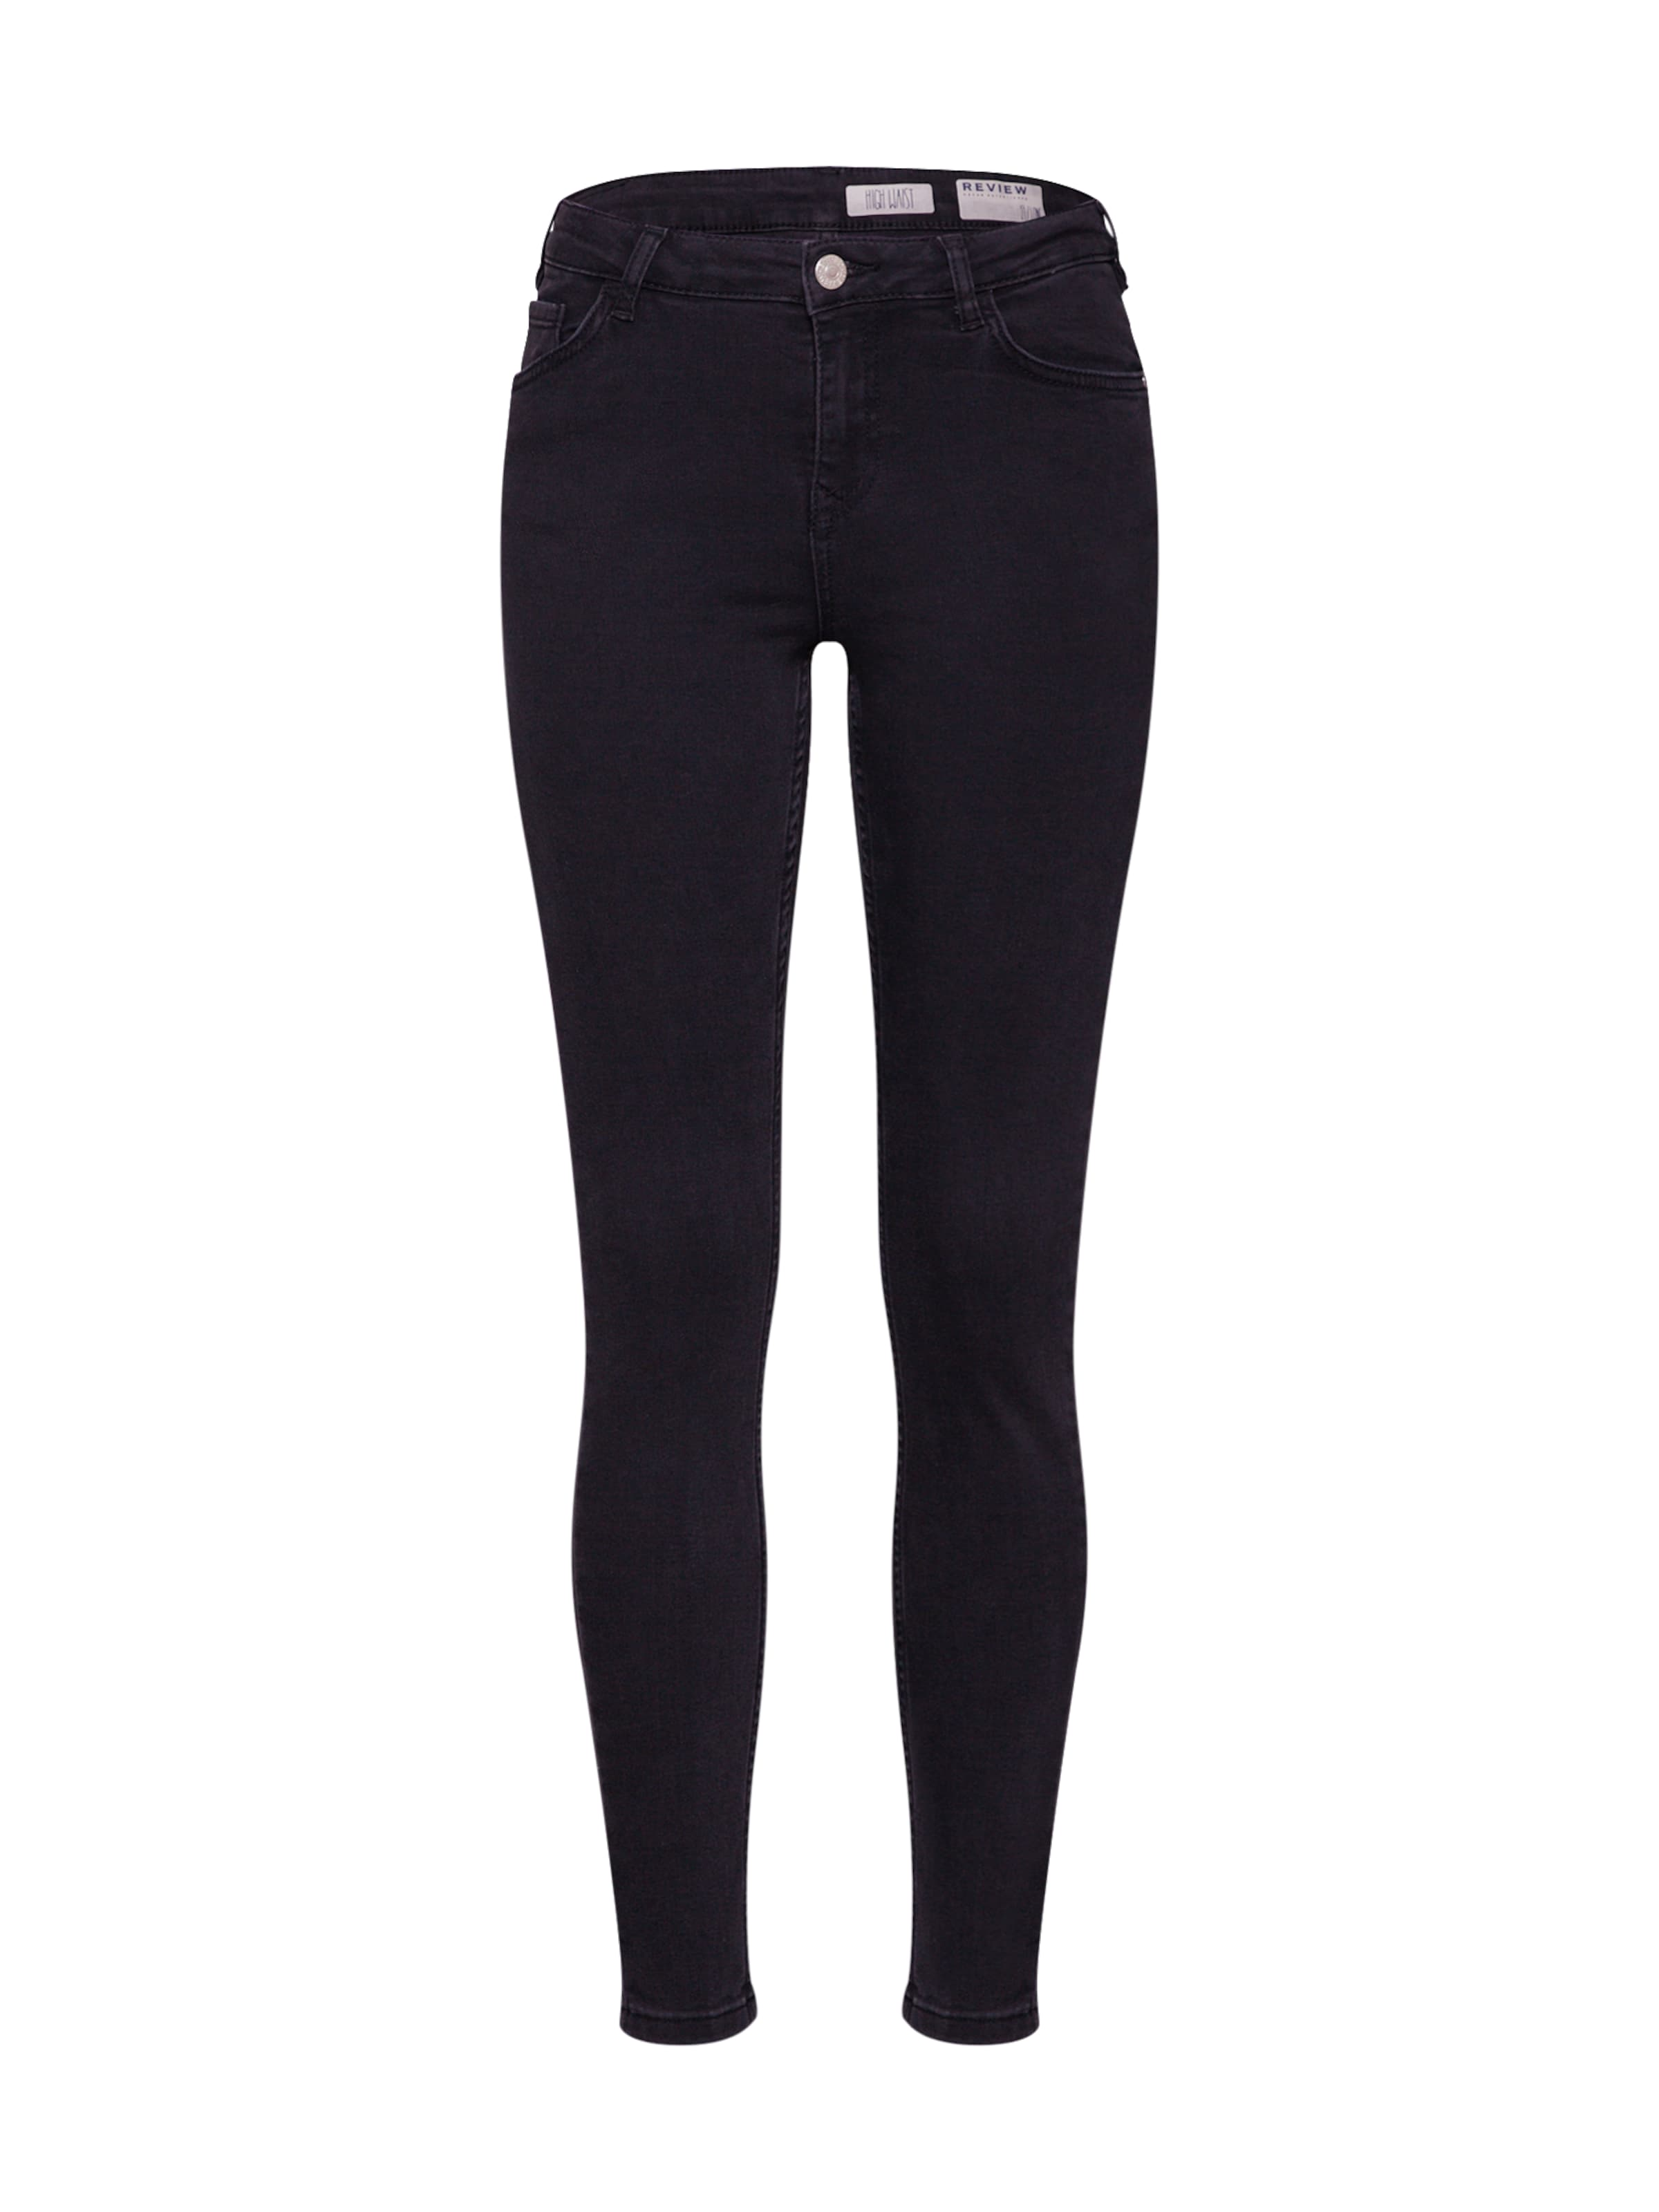 En 'hw Noir Jean Black' Review ZiTXPkOu